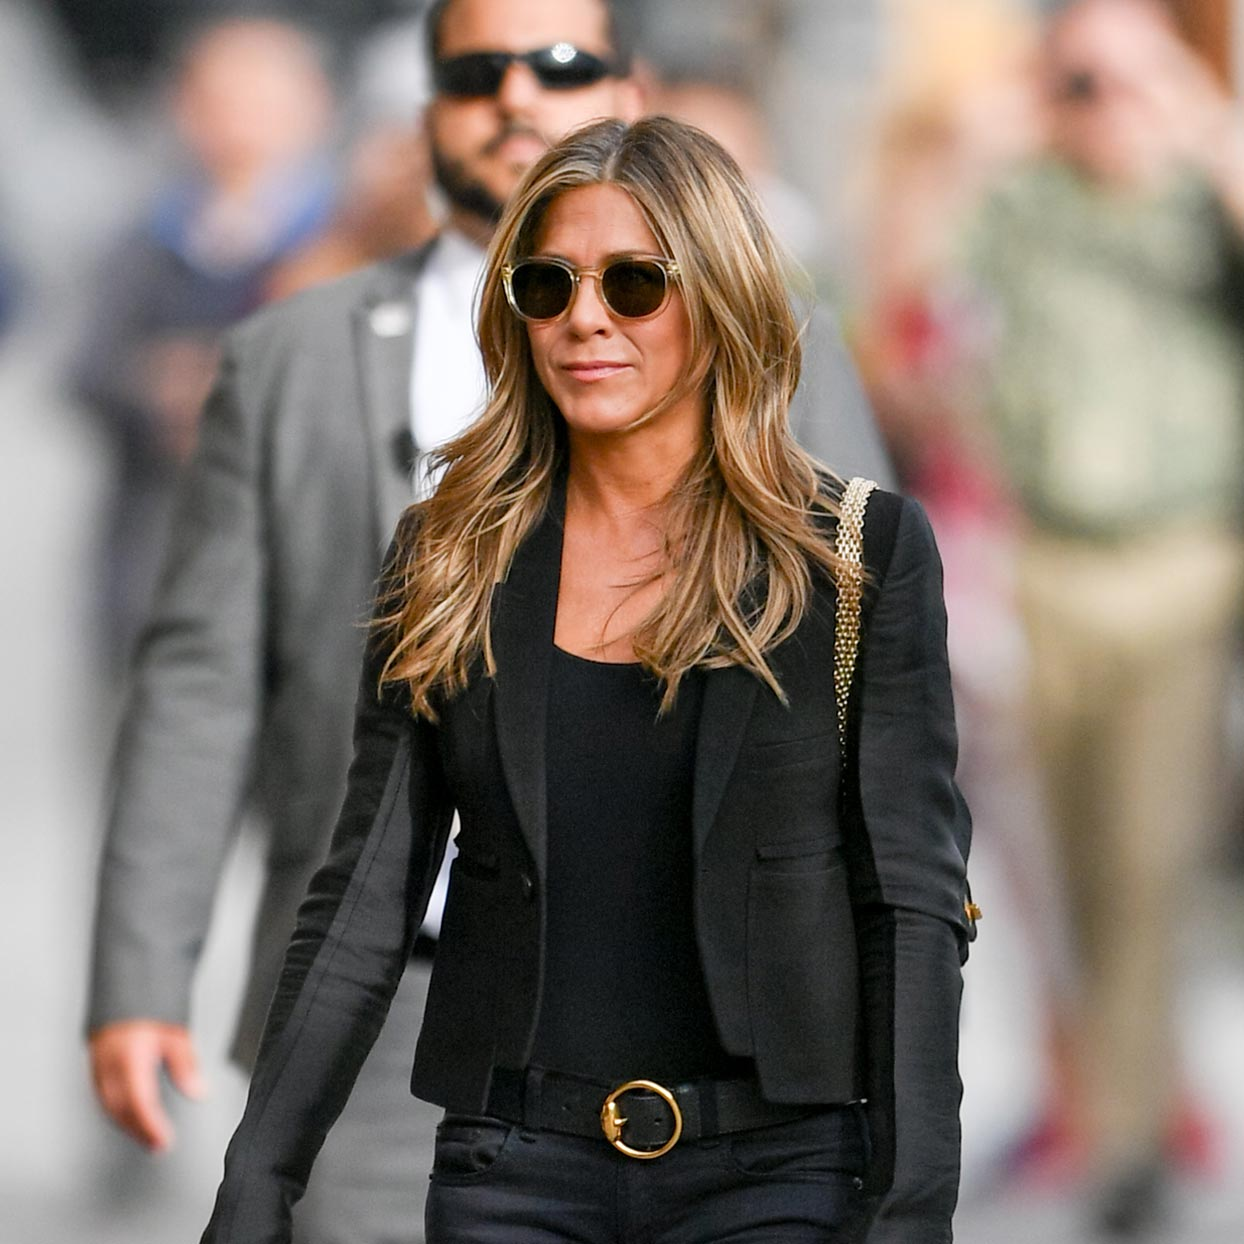 113020-ECOMM-Jennifer-Aniston-SOC